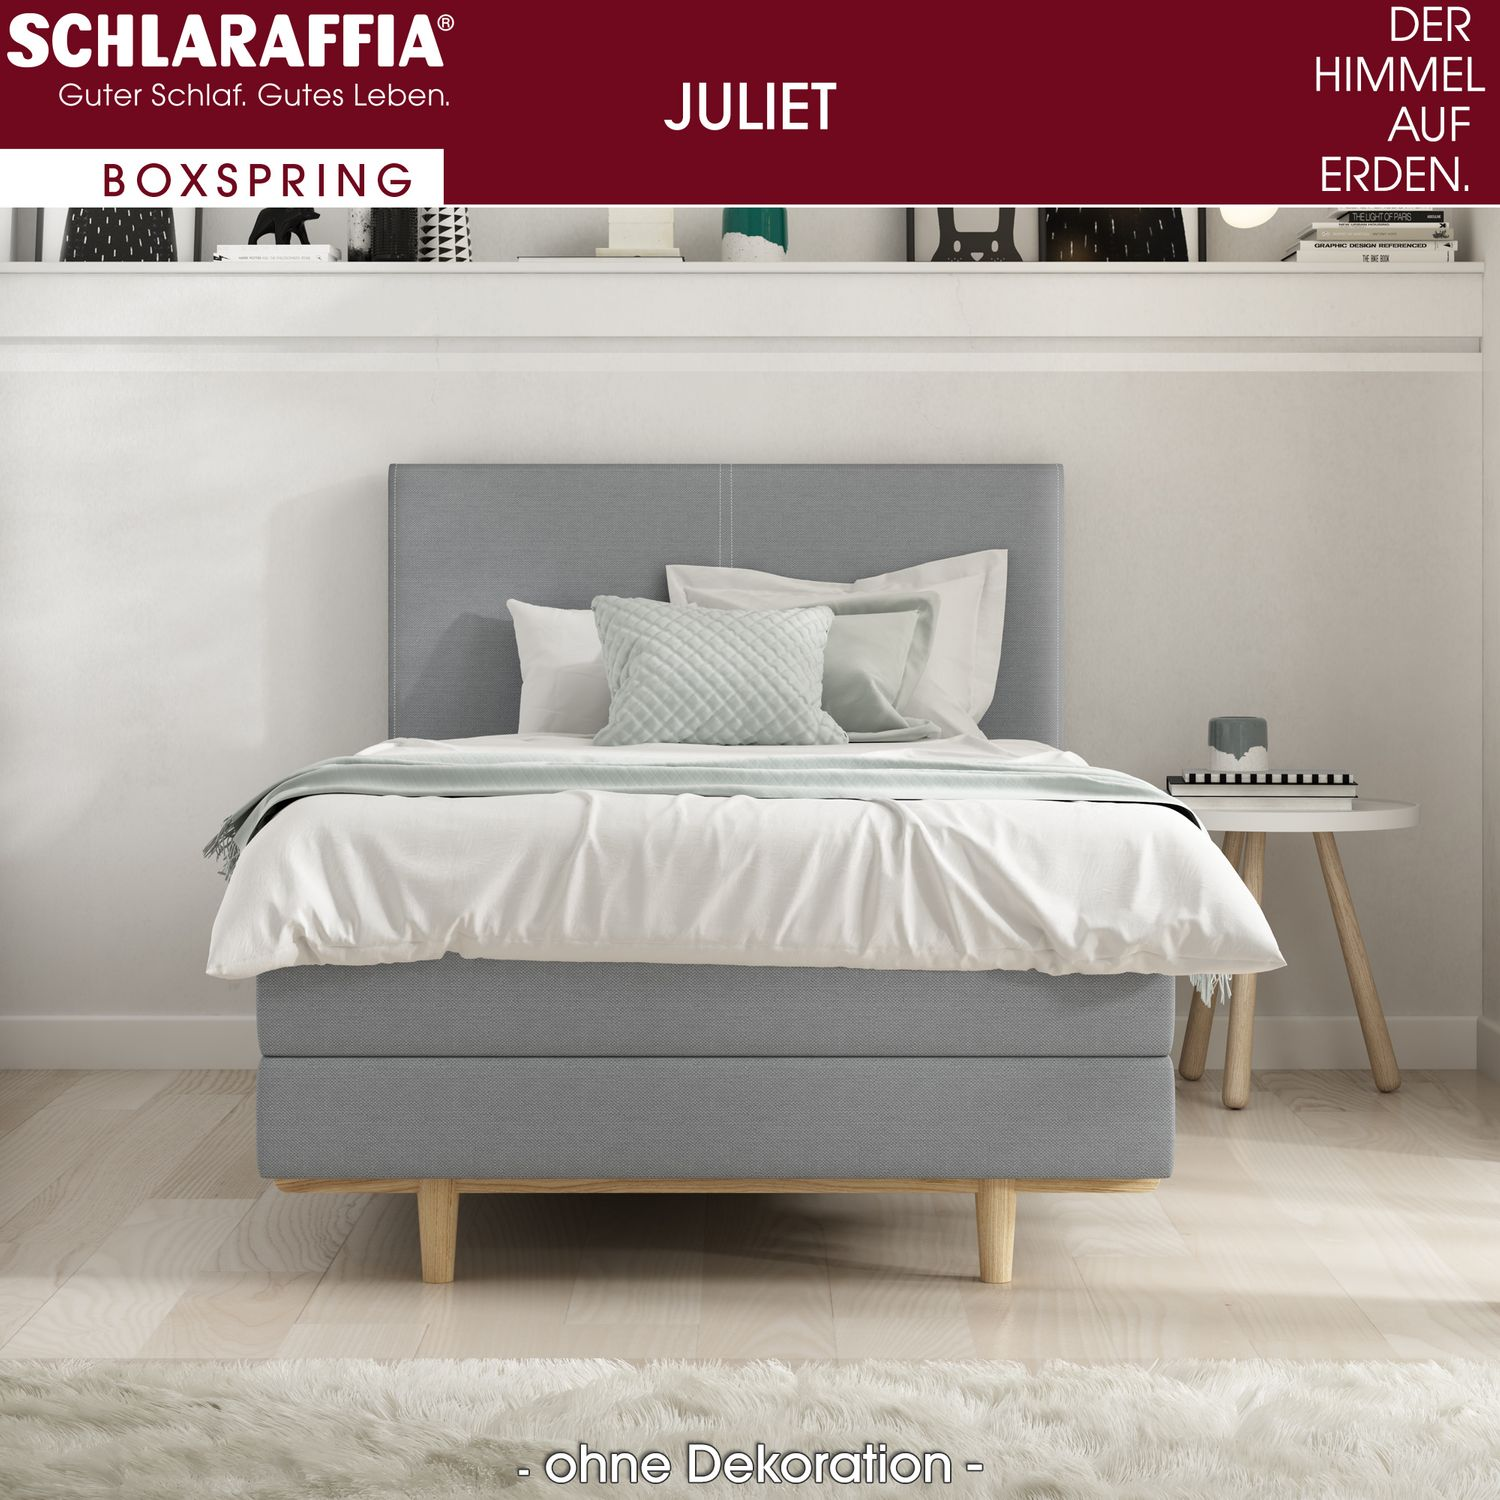 schlaraffia juliet box cubic boxspringbett 200x220 cm boxspringbetten nach gr e 200 x 220 cm. Black Bedroom Furniture Sets. Home Design Ideas